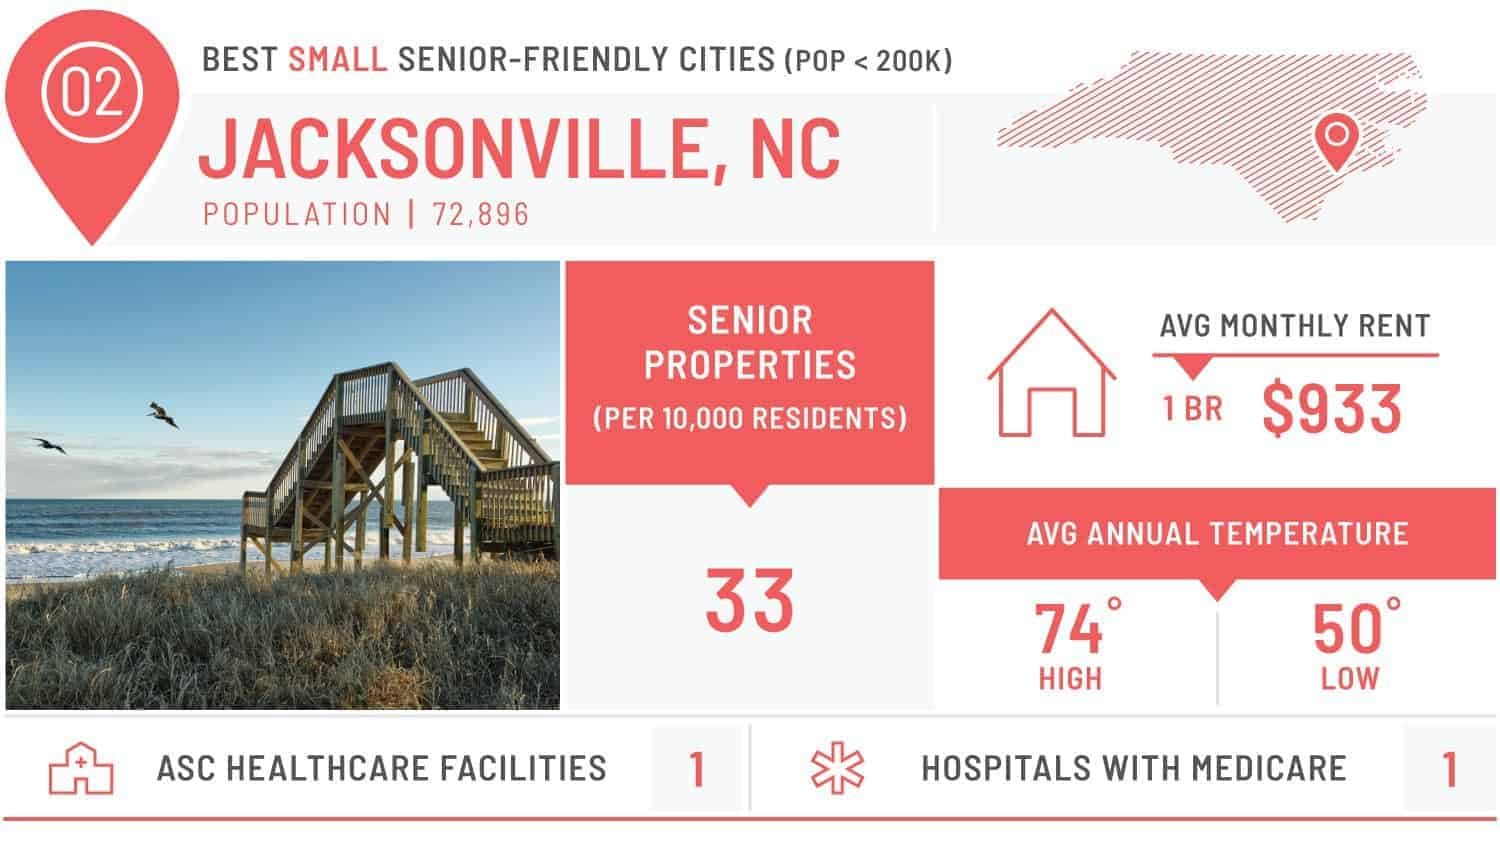 visual of the best small city for seniors - jacksonville